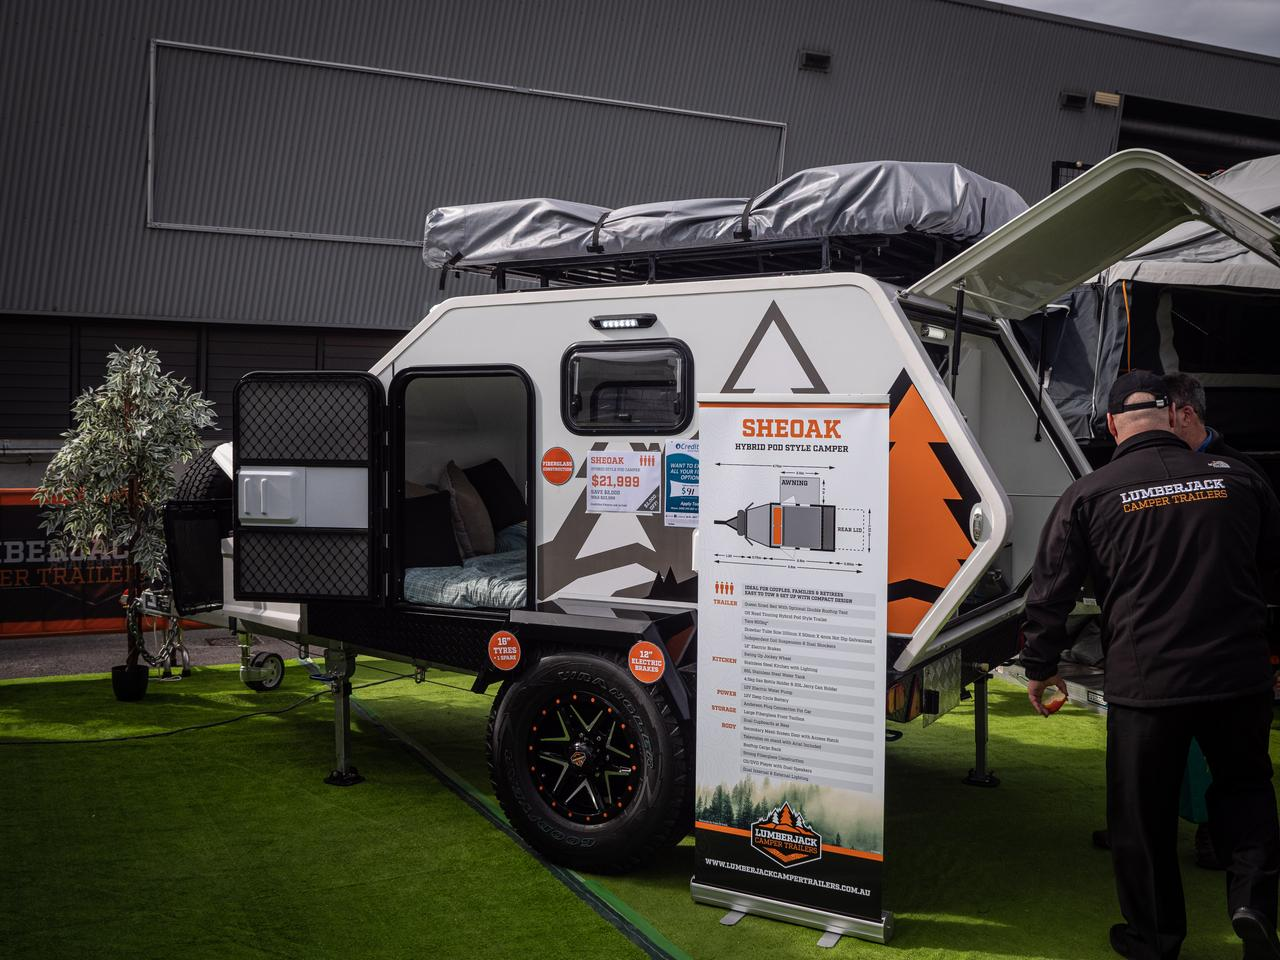 Lumberjack introduced the Sheoak earlier this year and shows it here at the National 4x4 and Outdoors Show in Melbourne, Australia